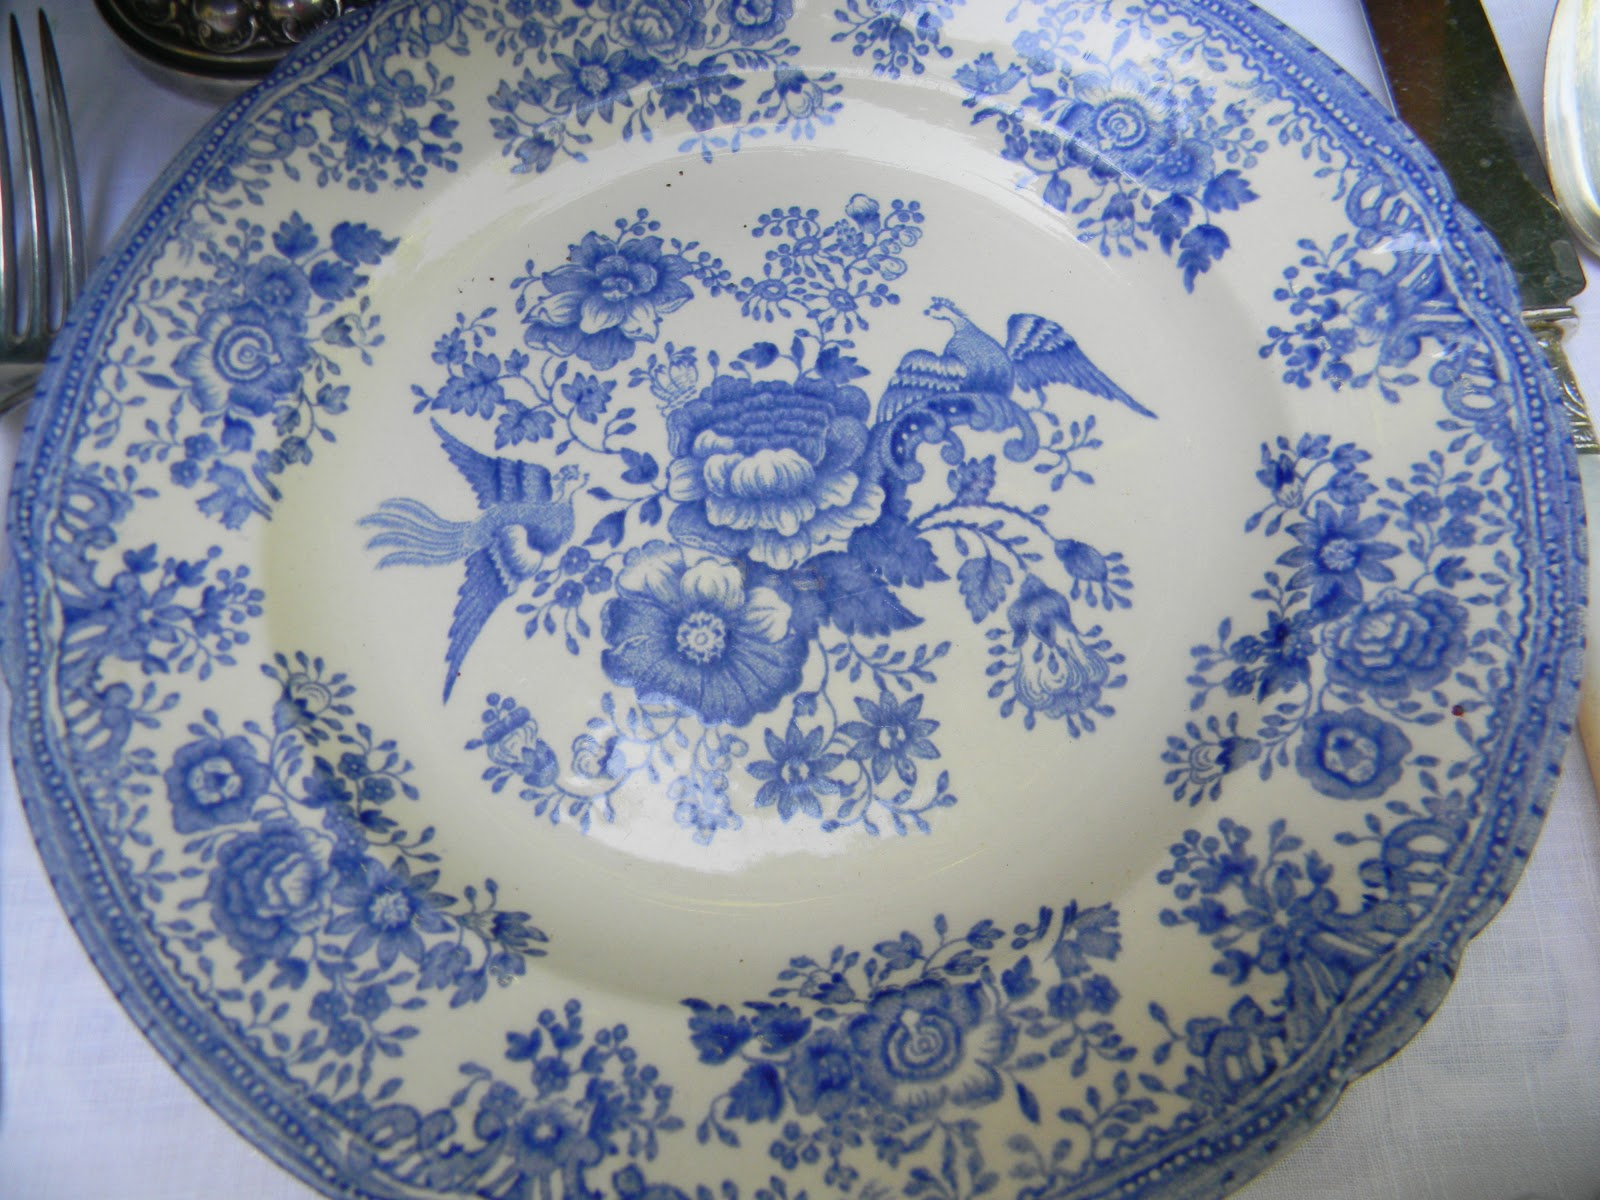 A Toile Tale: Blue and White Hydrangeas with Asiatic Pheasant